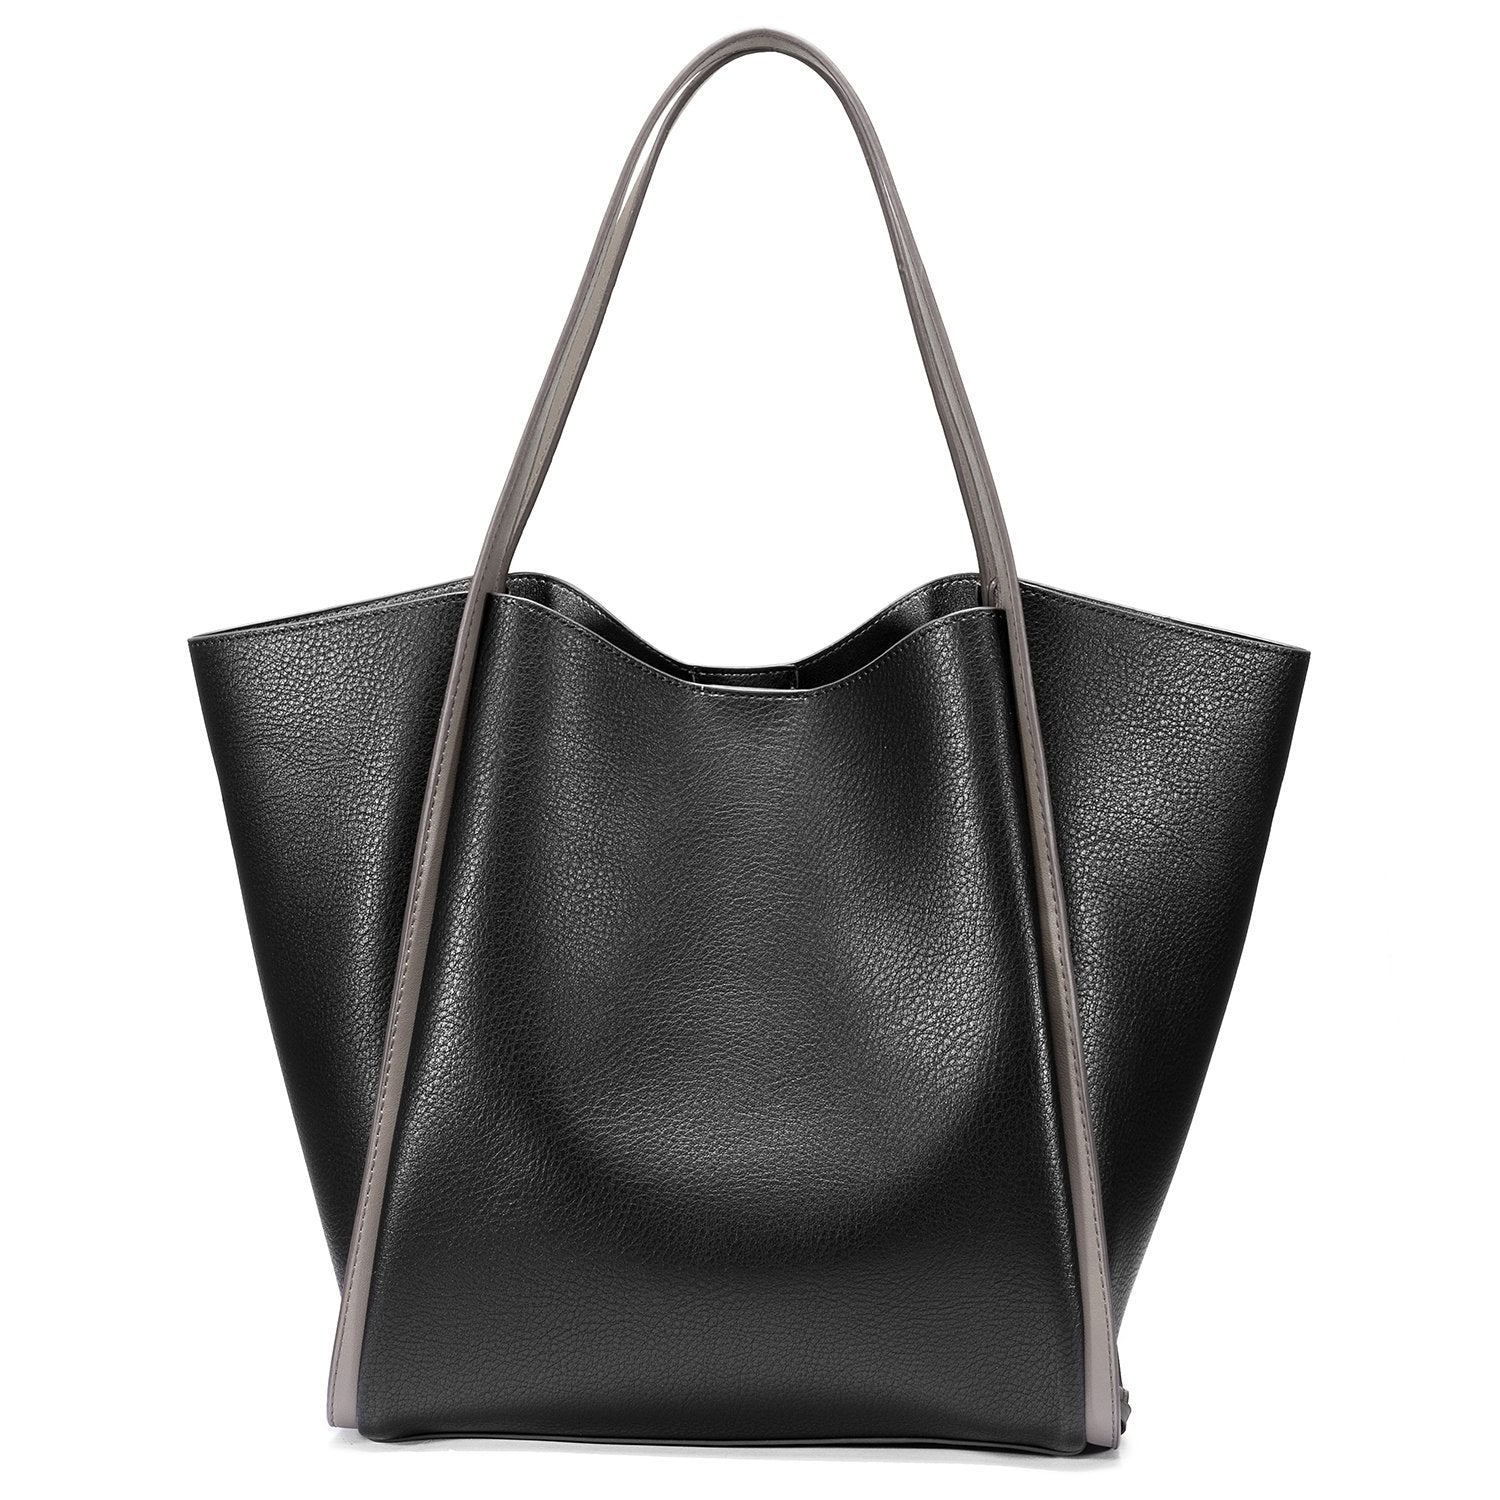 LOVEVOOK Office Shoulder Bags Casual Tote Commute For Women